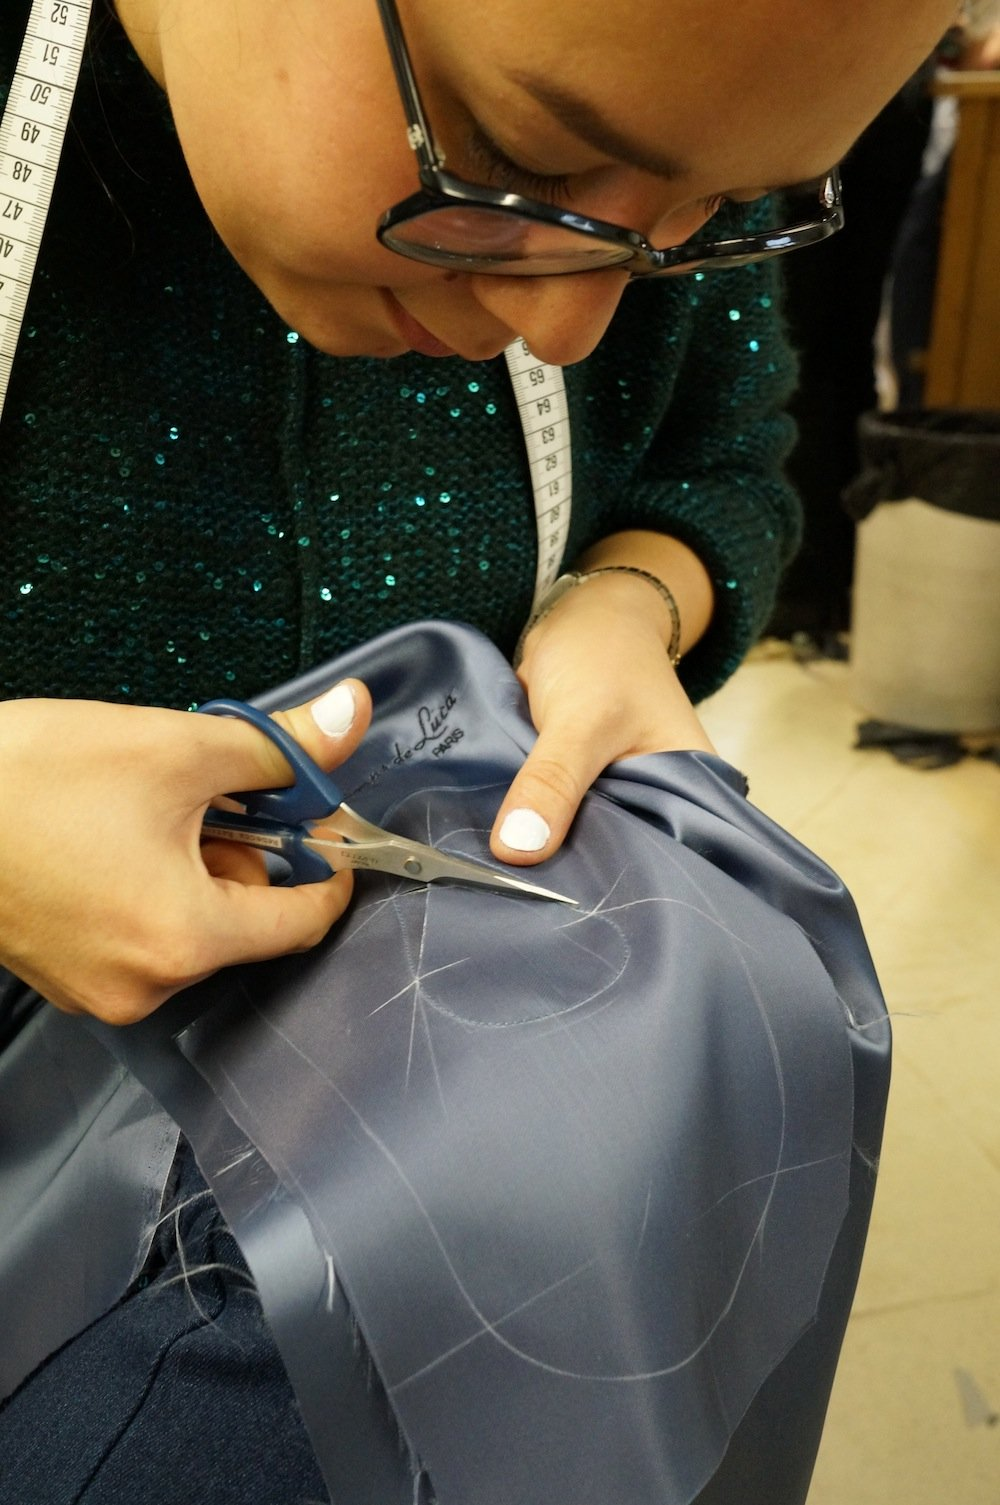 The tailors I have known: Part 2, Italy, France, HK